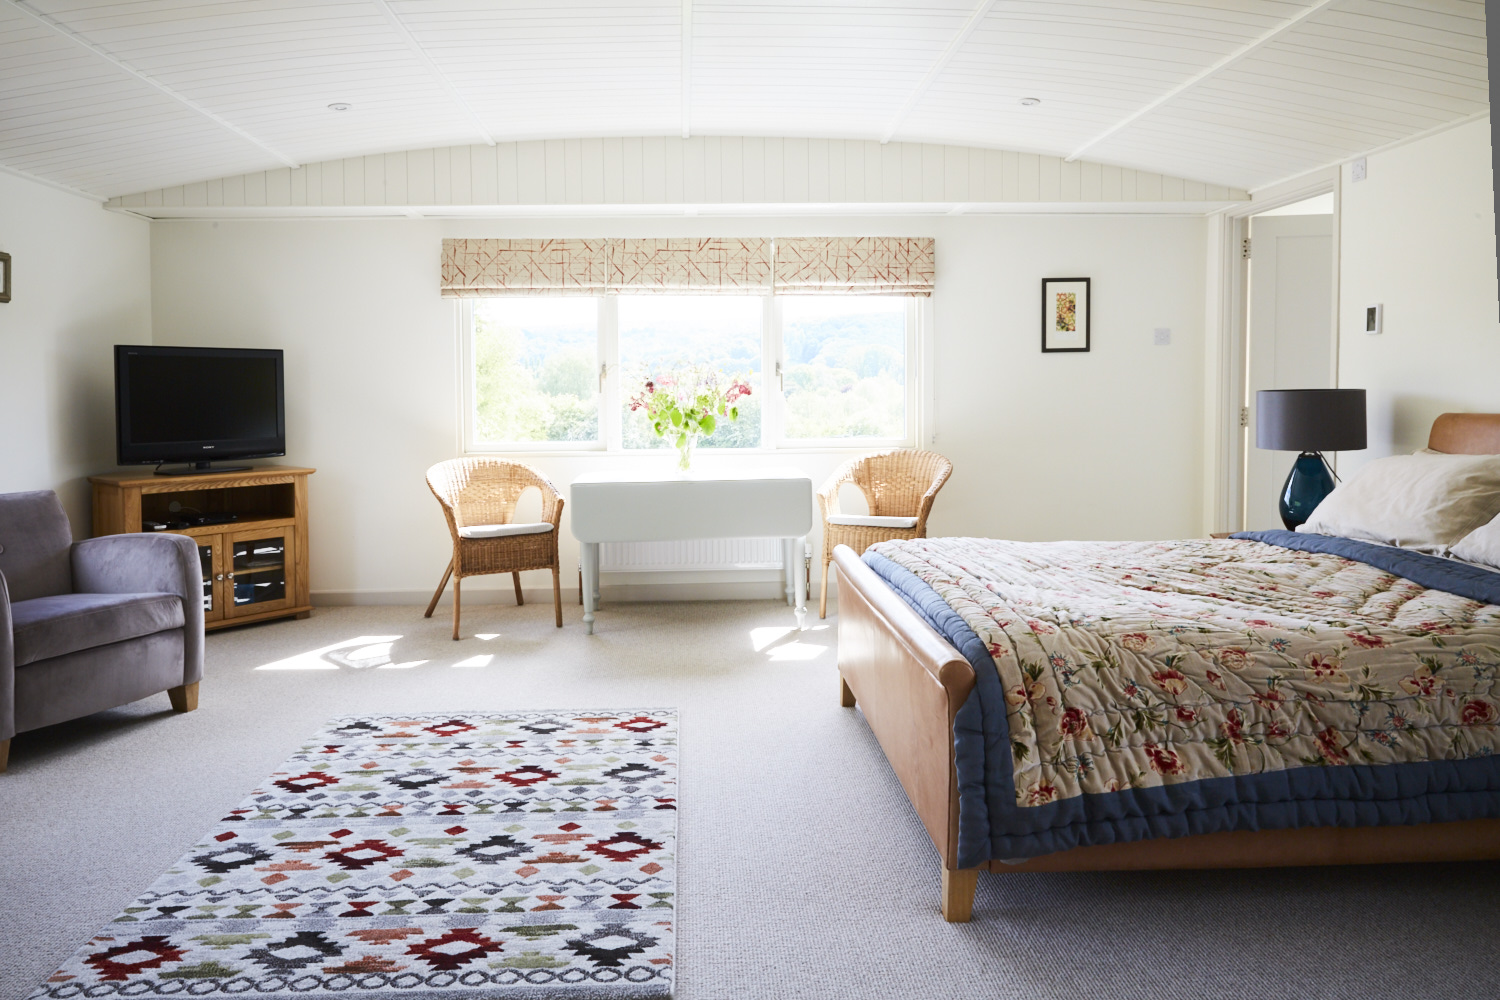 Bed and Breakfast Snodhill castle.jpg